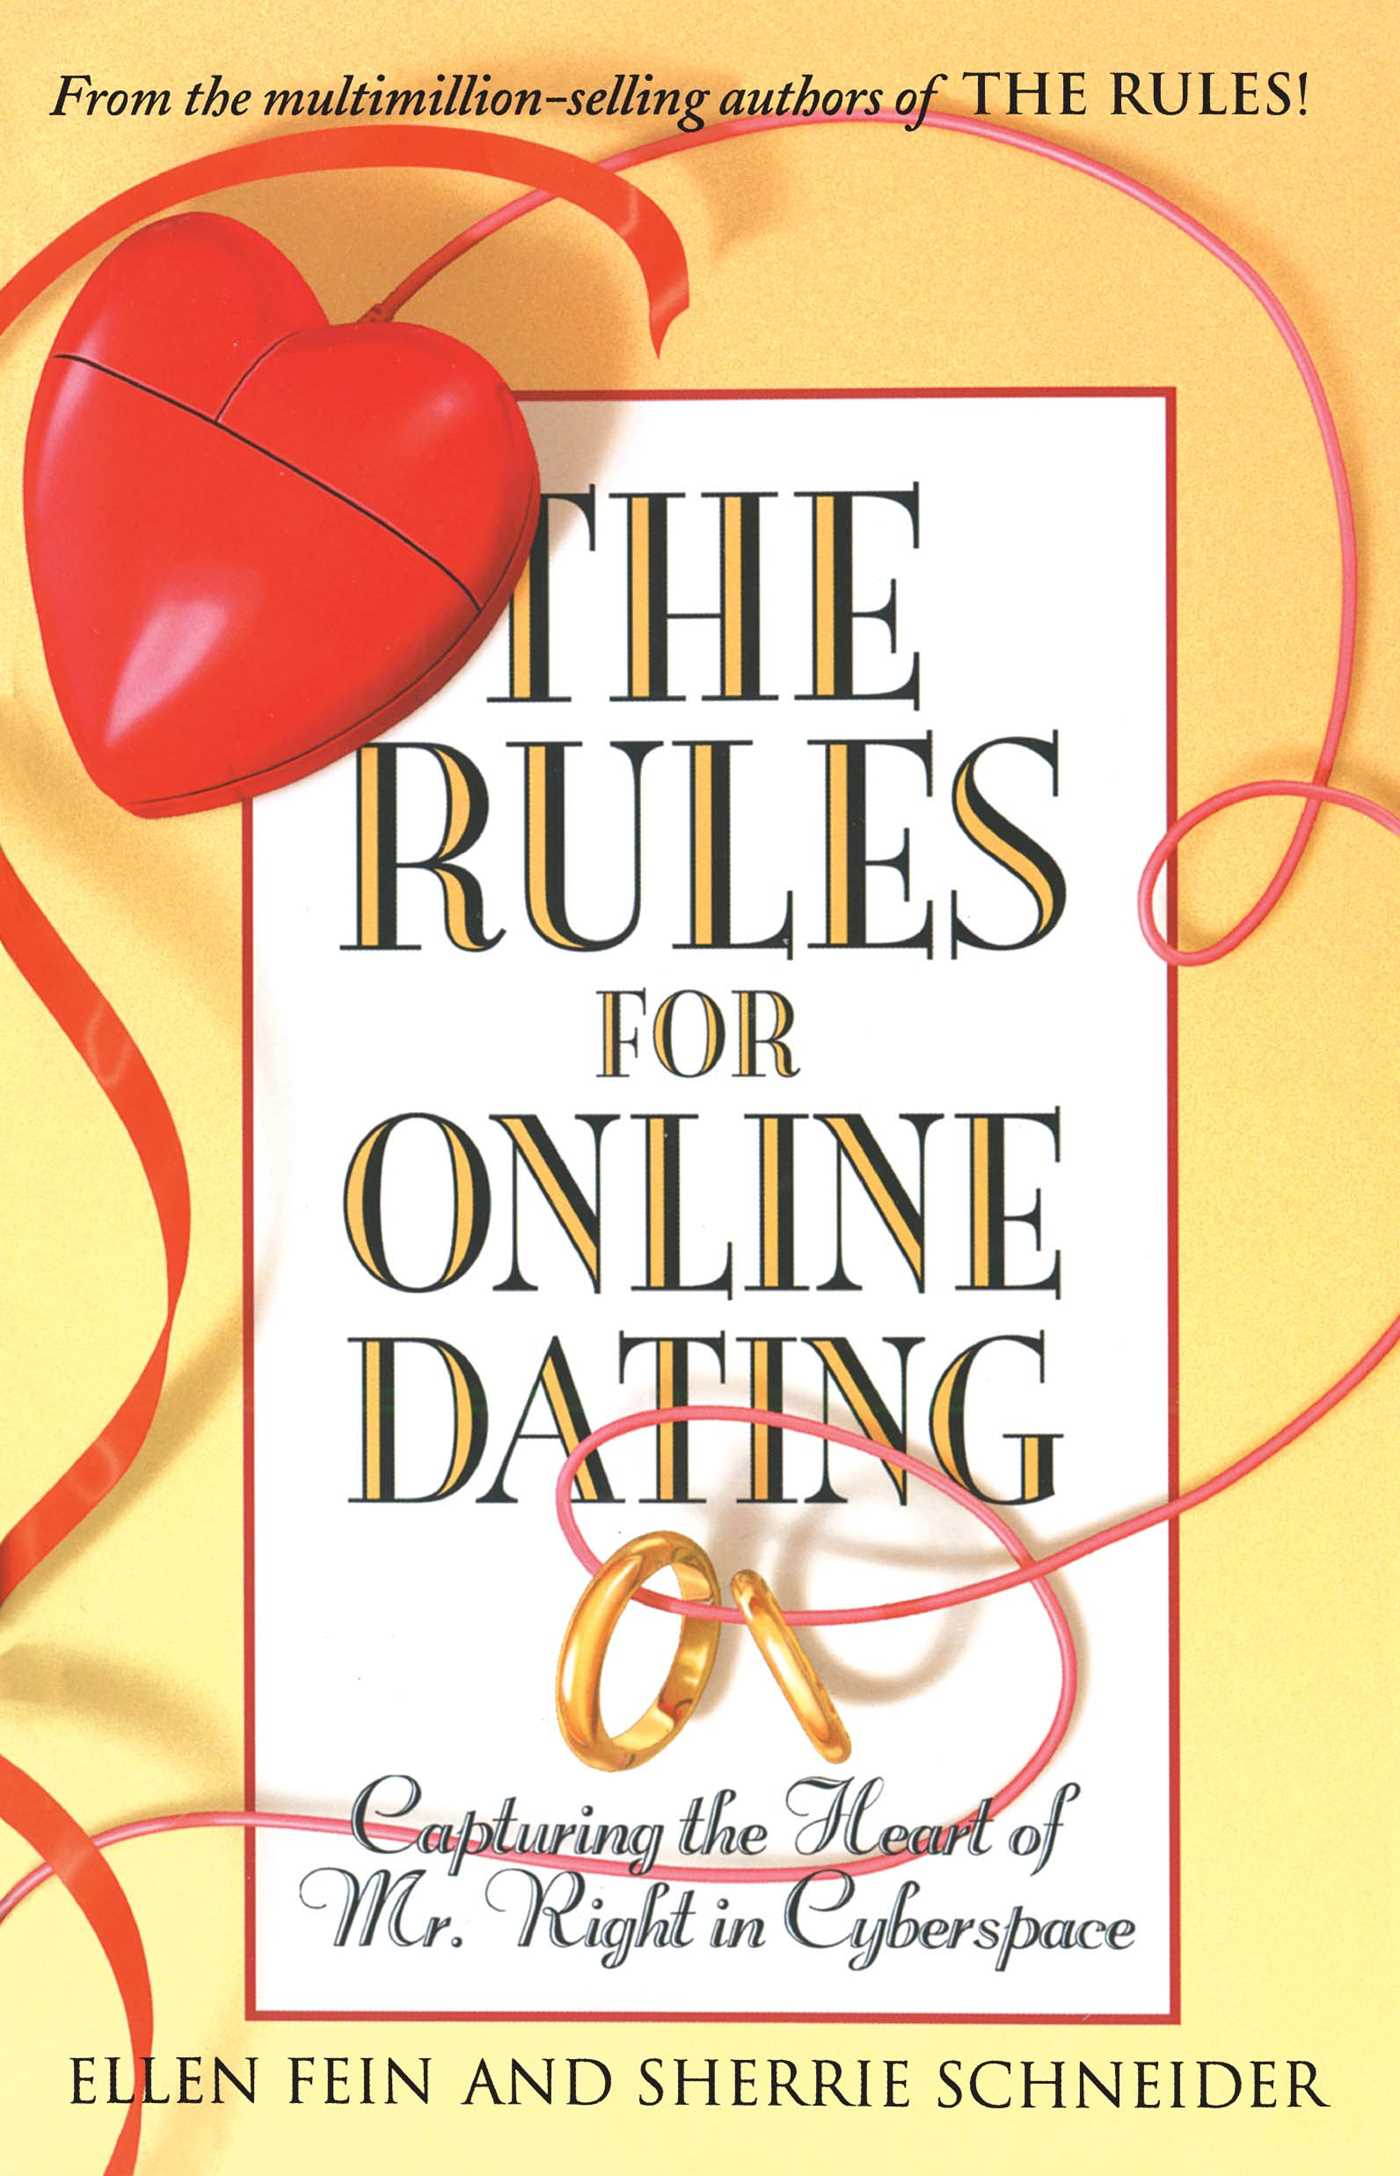 Protocol on internet dating sites